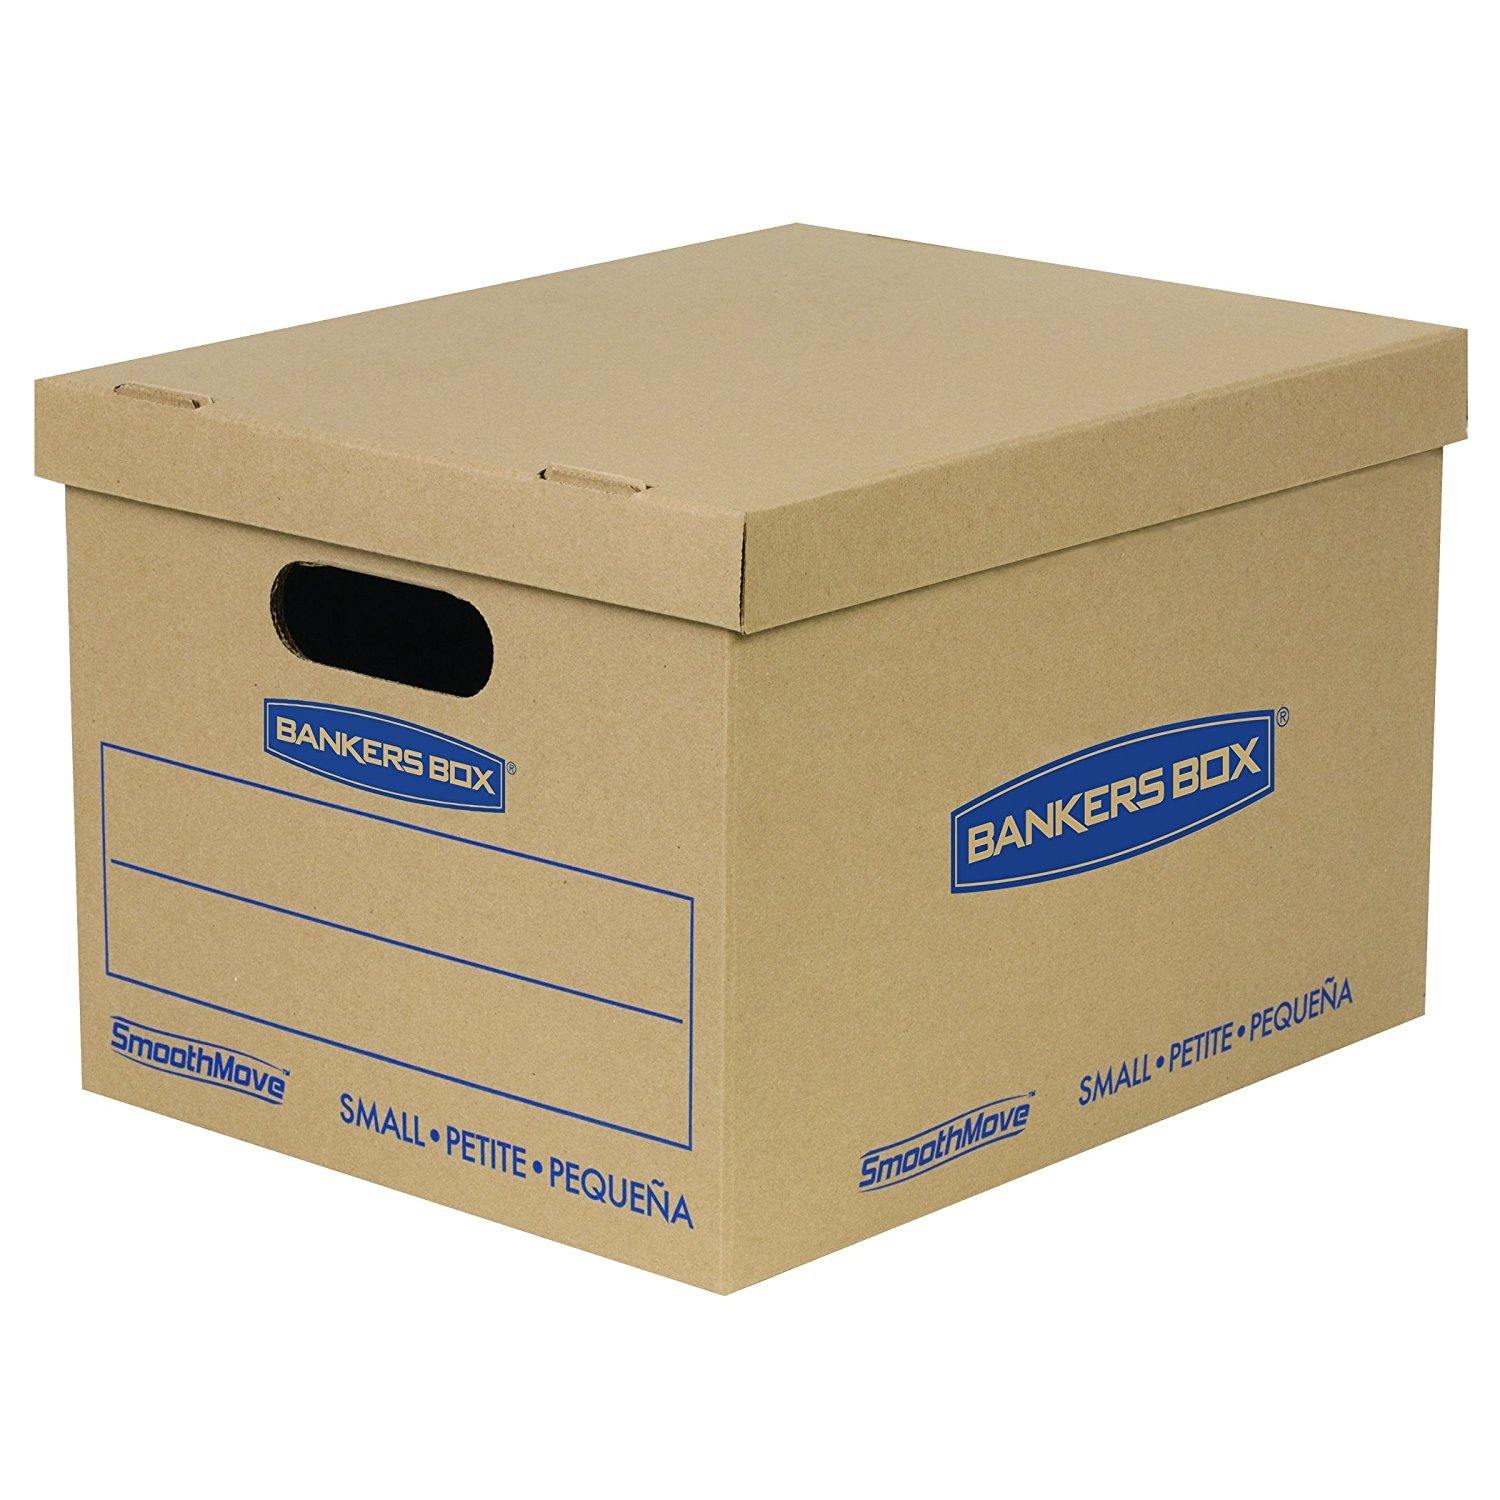 Bankers Box SmoothMove Classic Moving Boxes, Tape-Free Assembly, Small, 15 x 12 x 10 Inches, 10 Pack (7714203)